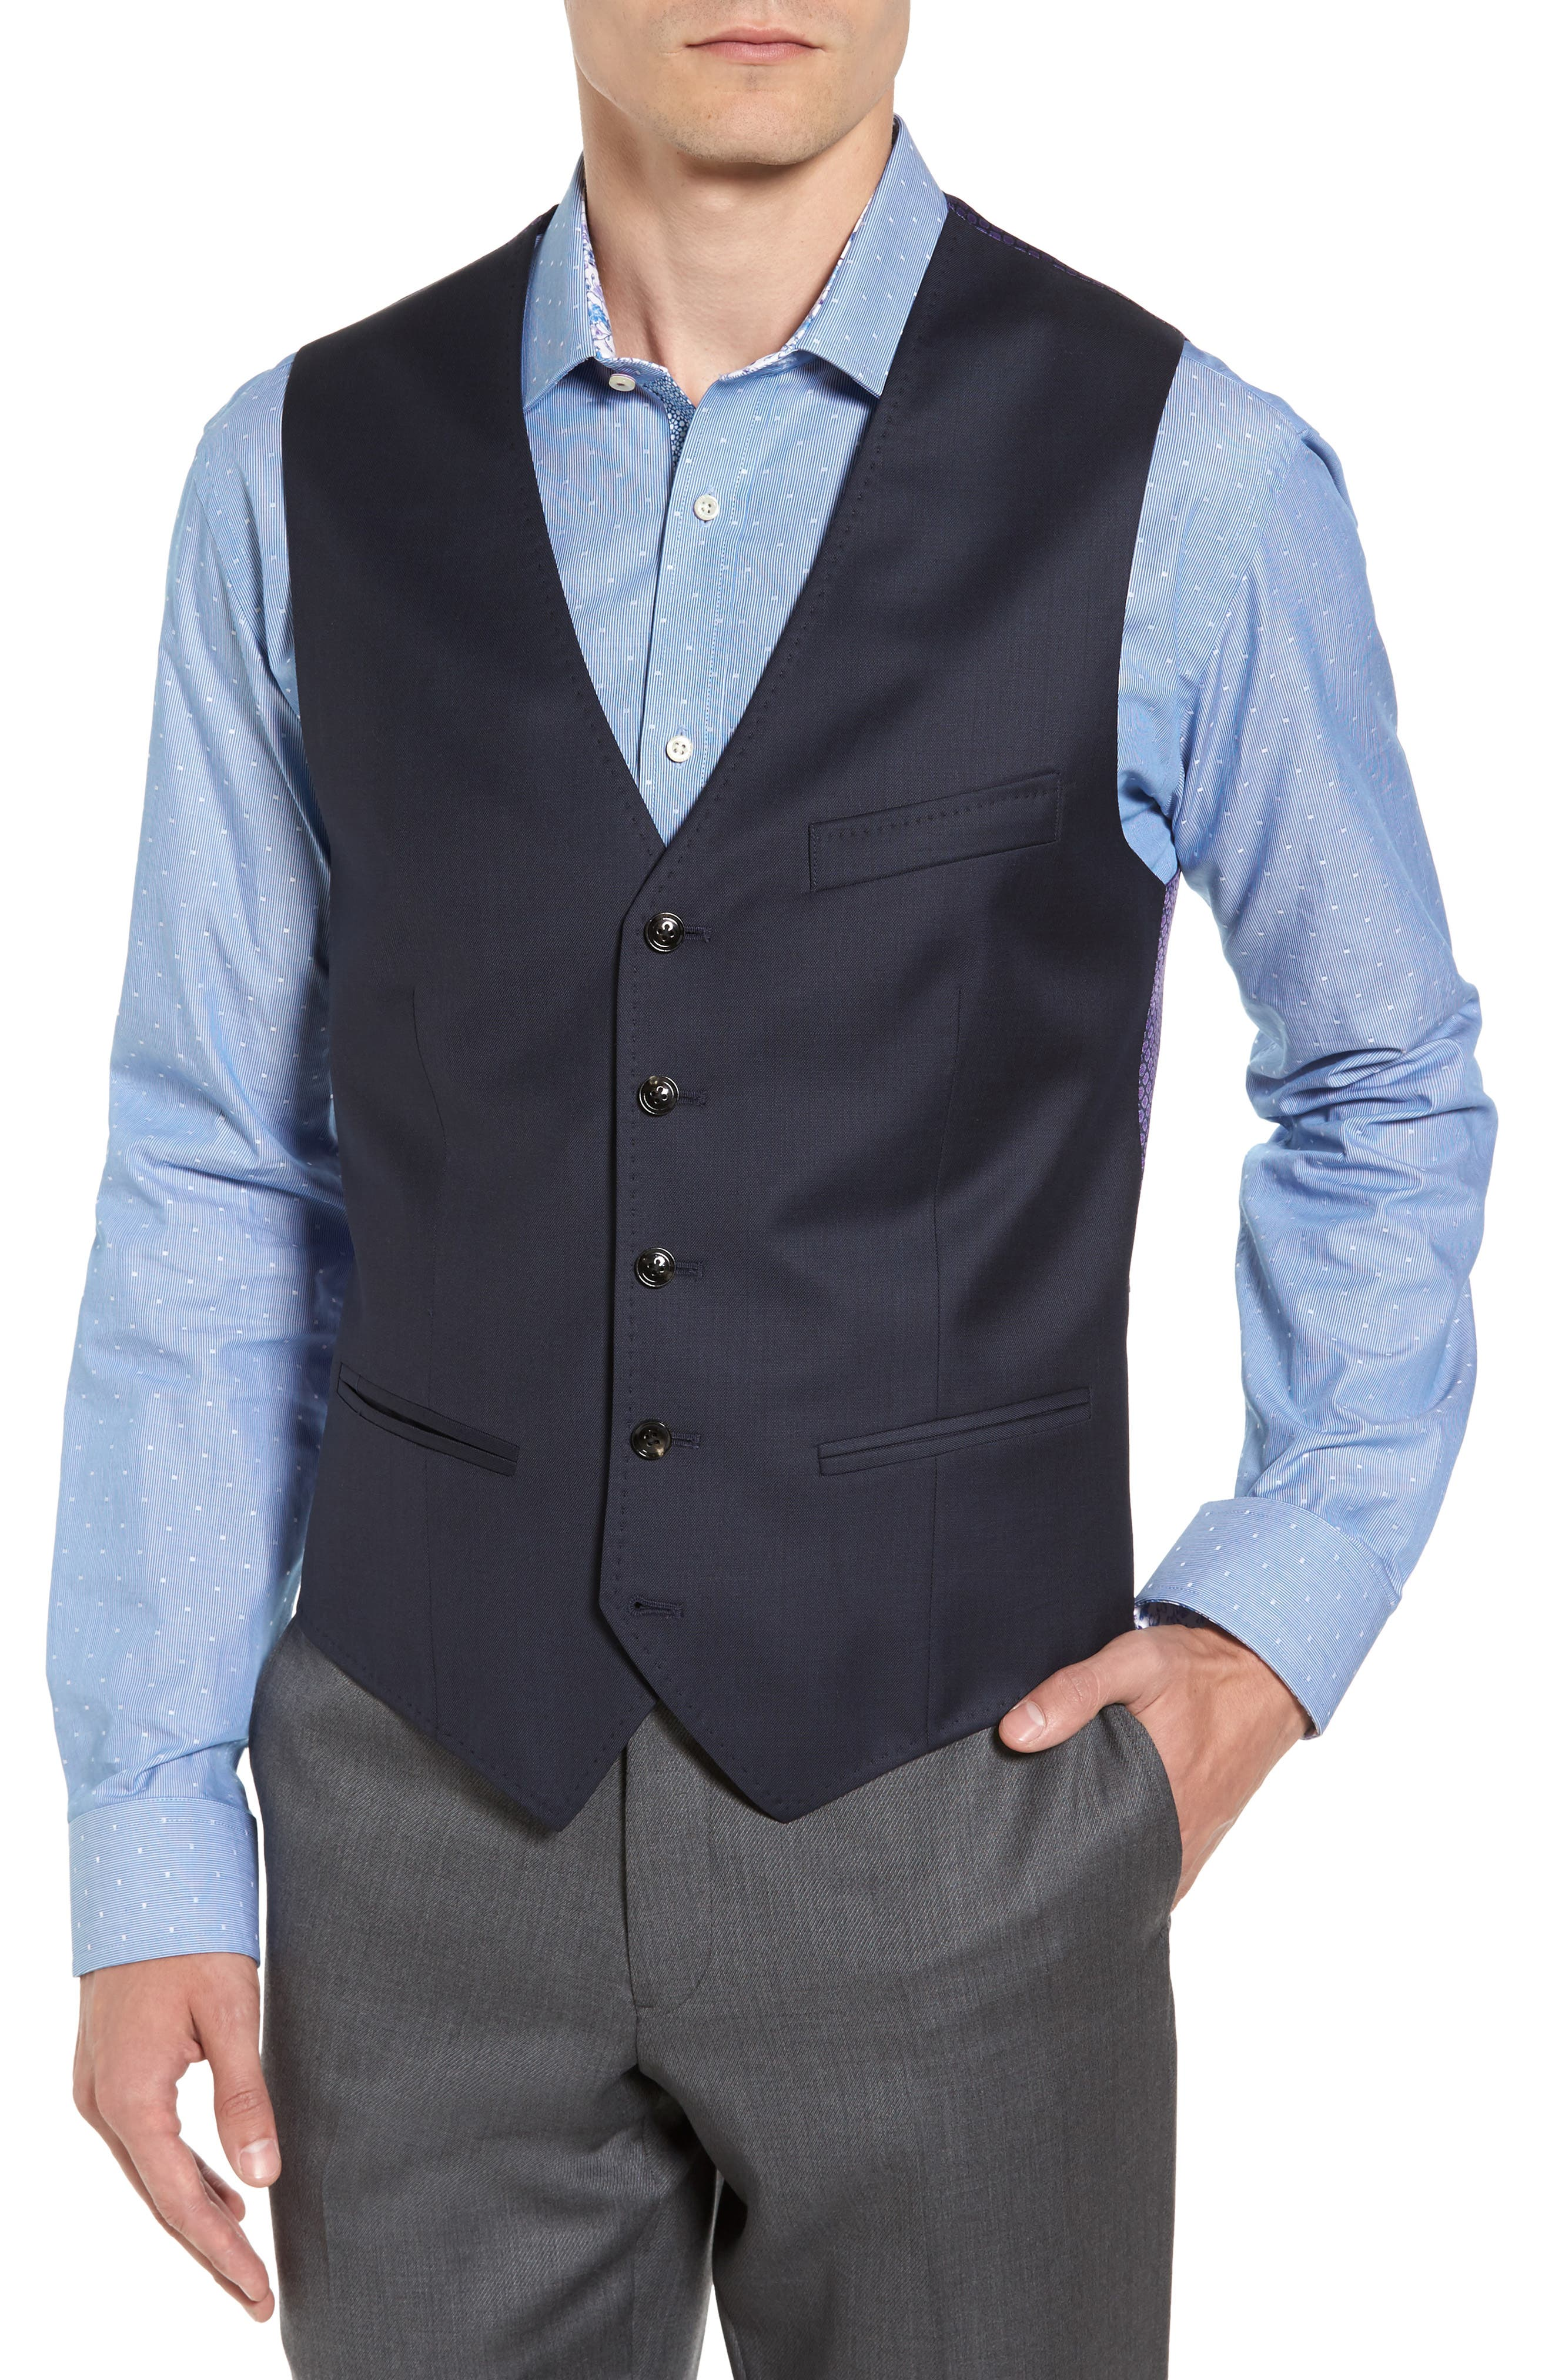 Troy Trim Fit Solid Wool Vest,                             Main thumbnail 1, color,                             Old Blue